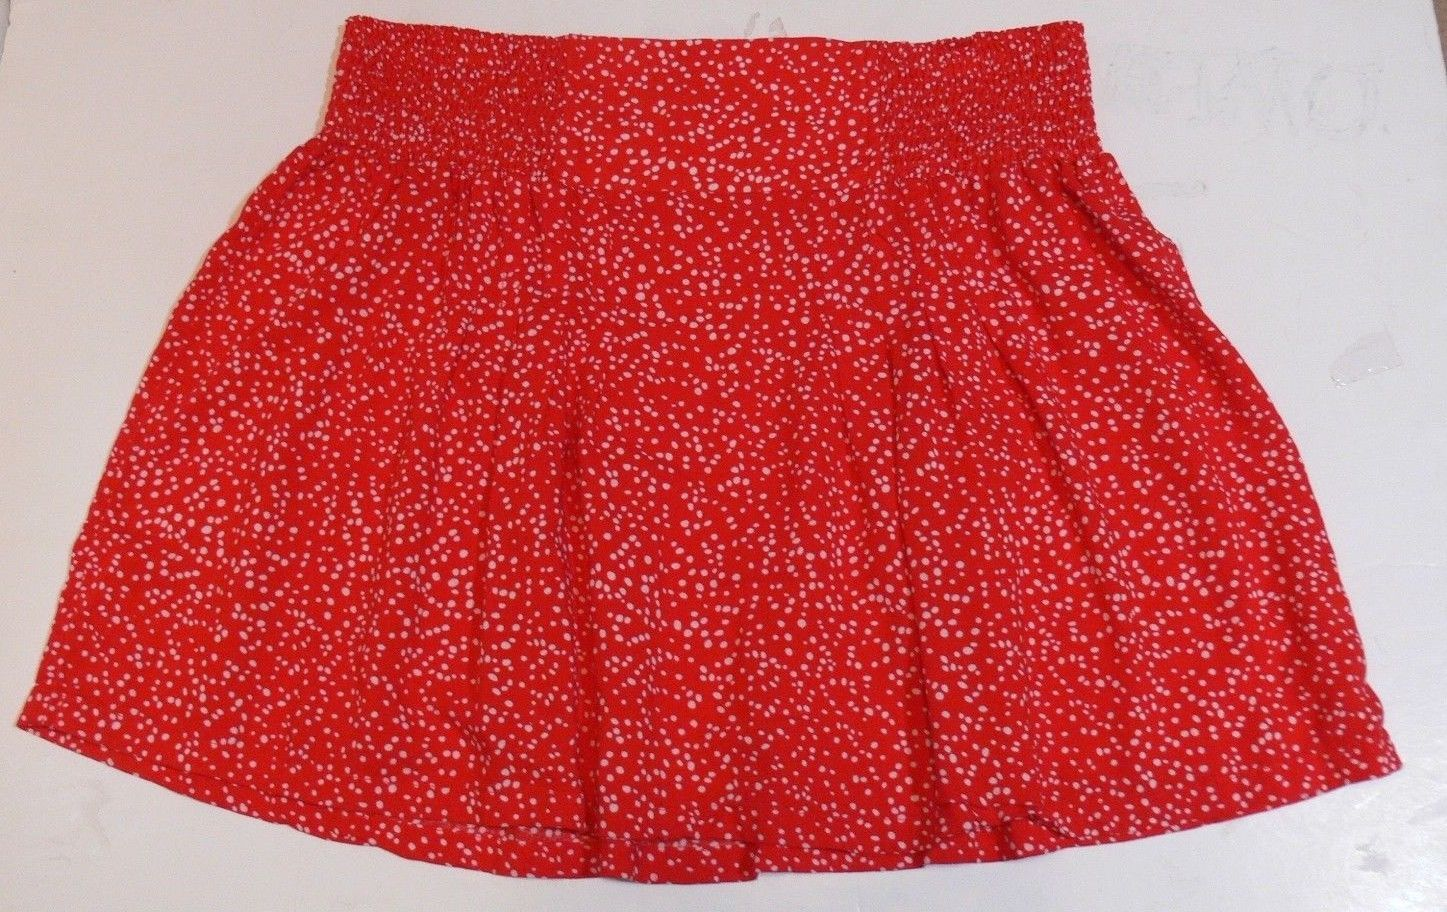 caef6aa6d8 GAP Women's Red White Dots Rayon Mini Skirt and 50 similar items